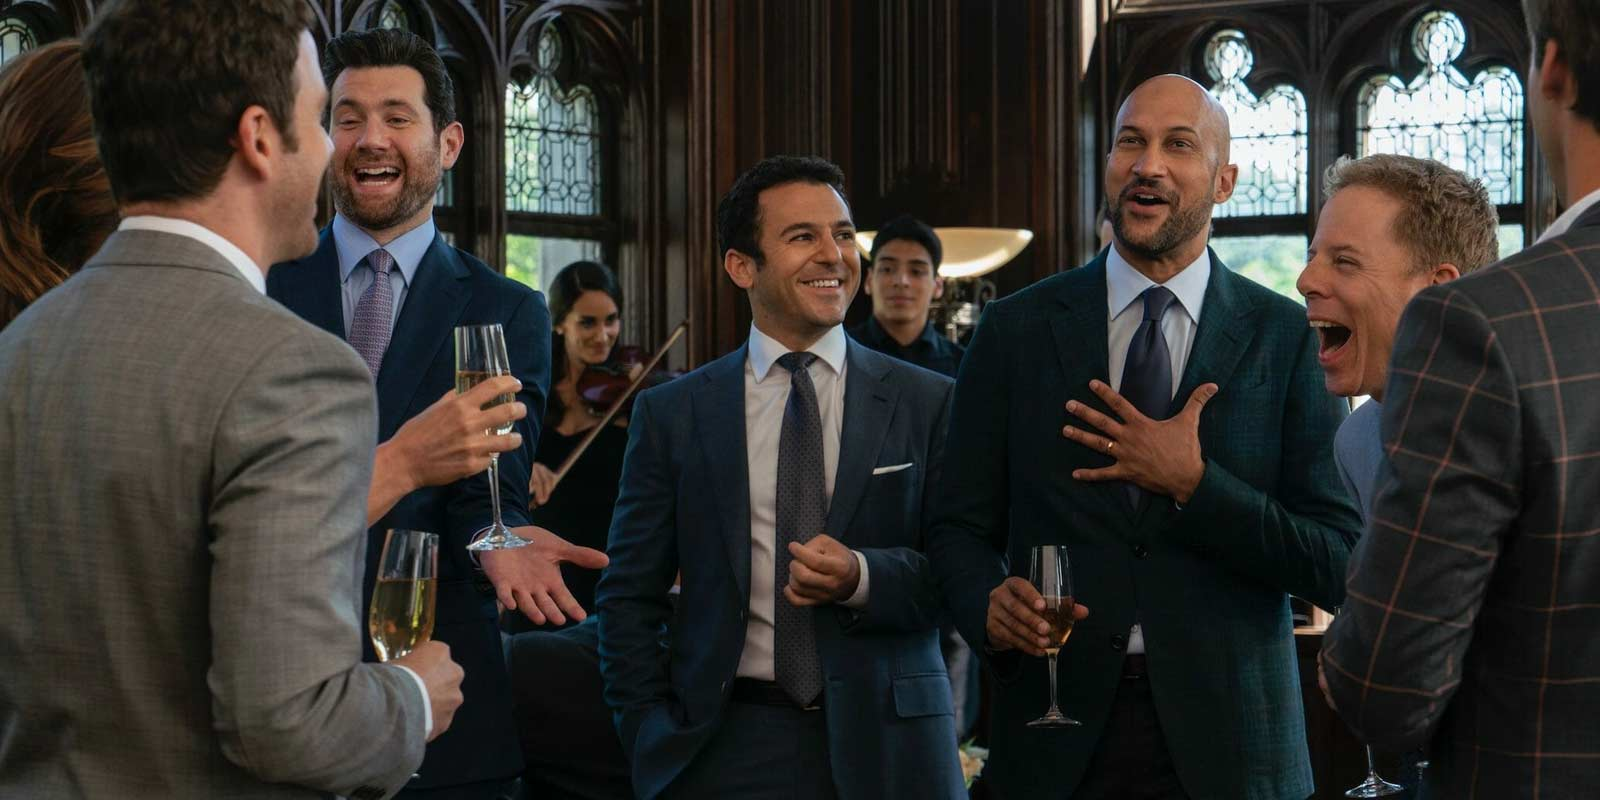 Friends from college season 3: Release Date, Cast, Plot, Crew and Latest Updates